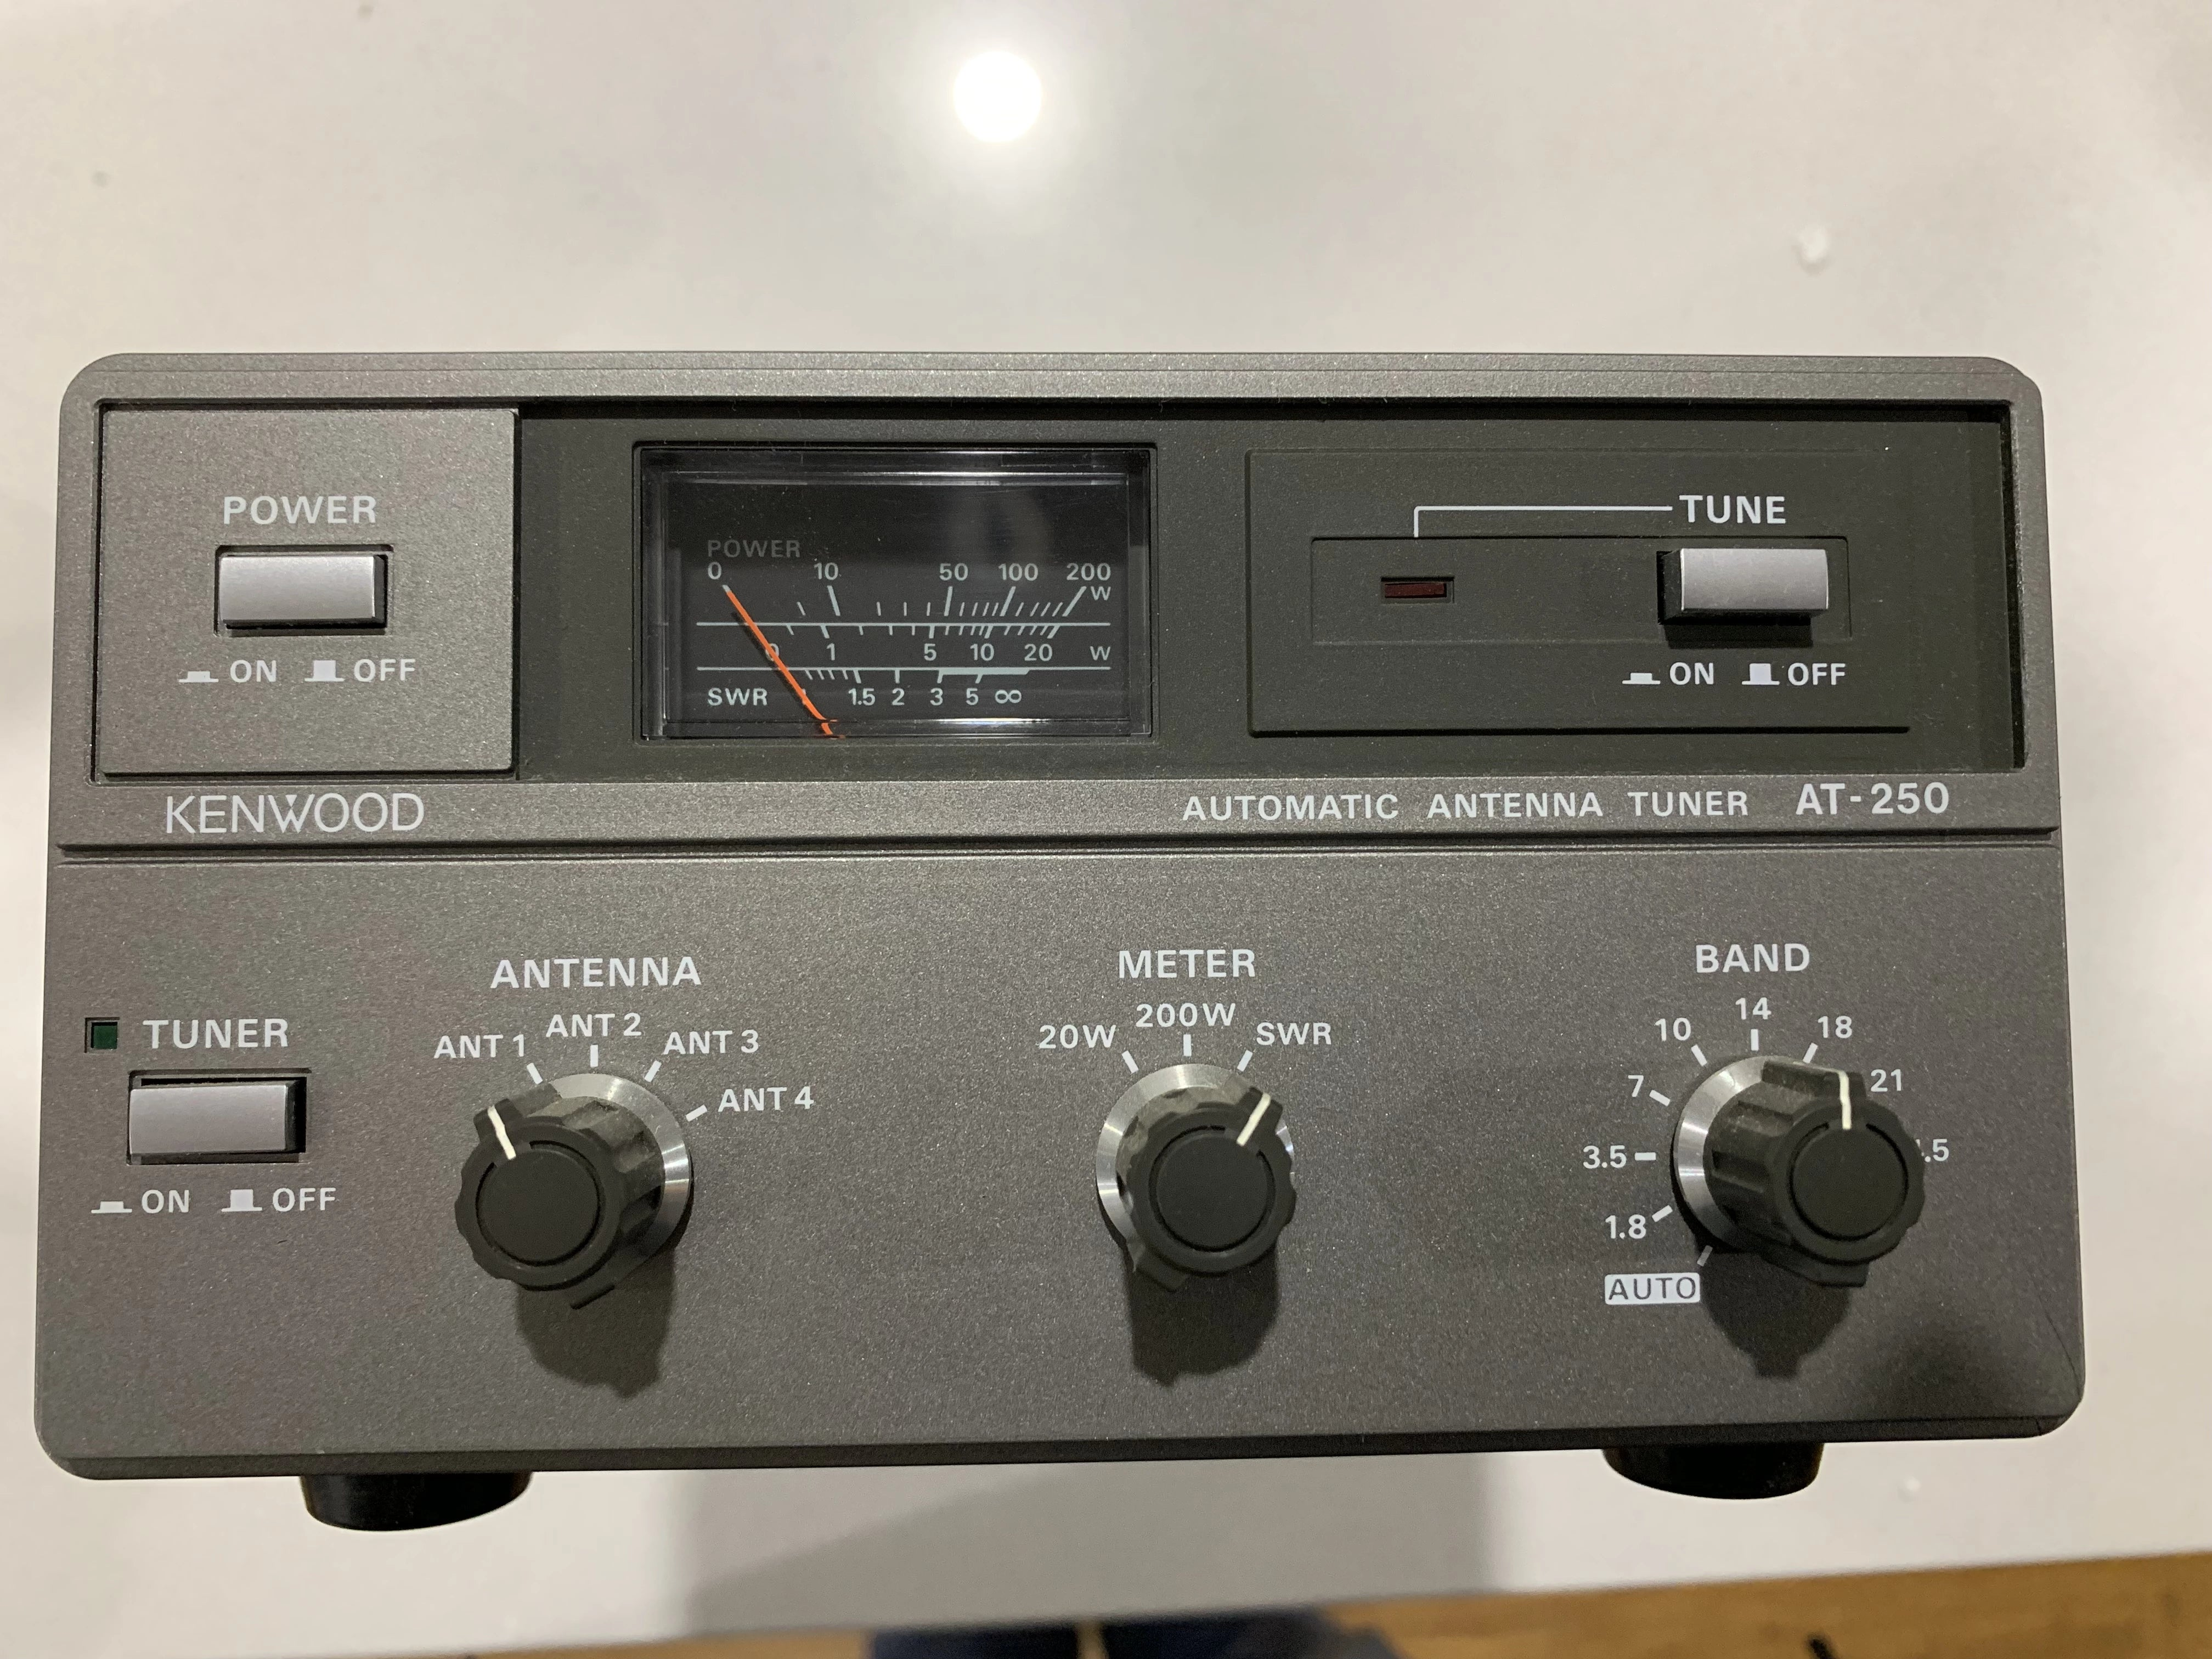 AT-250 Automatic Antenna Tuner